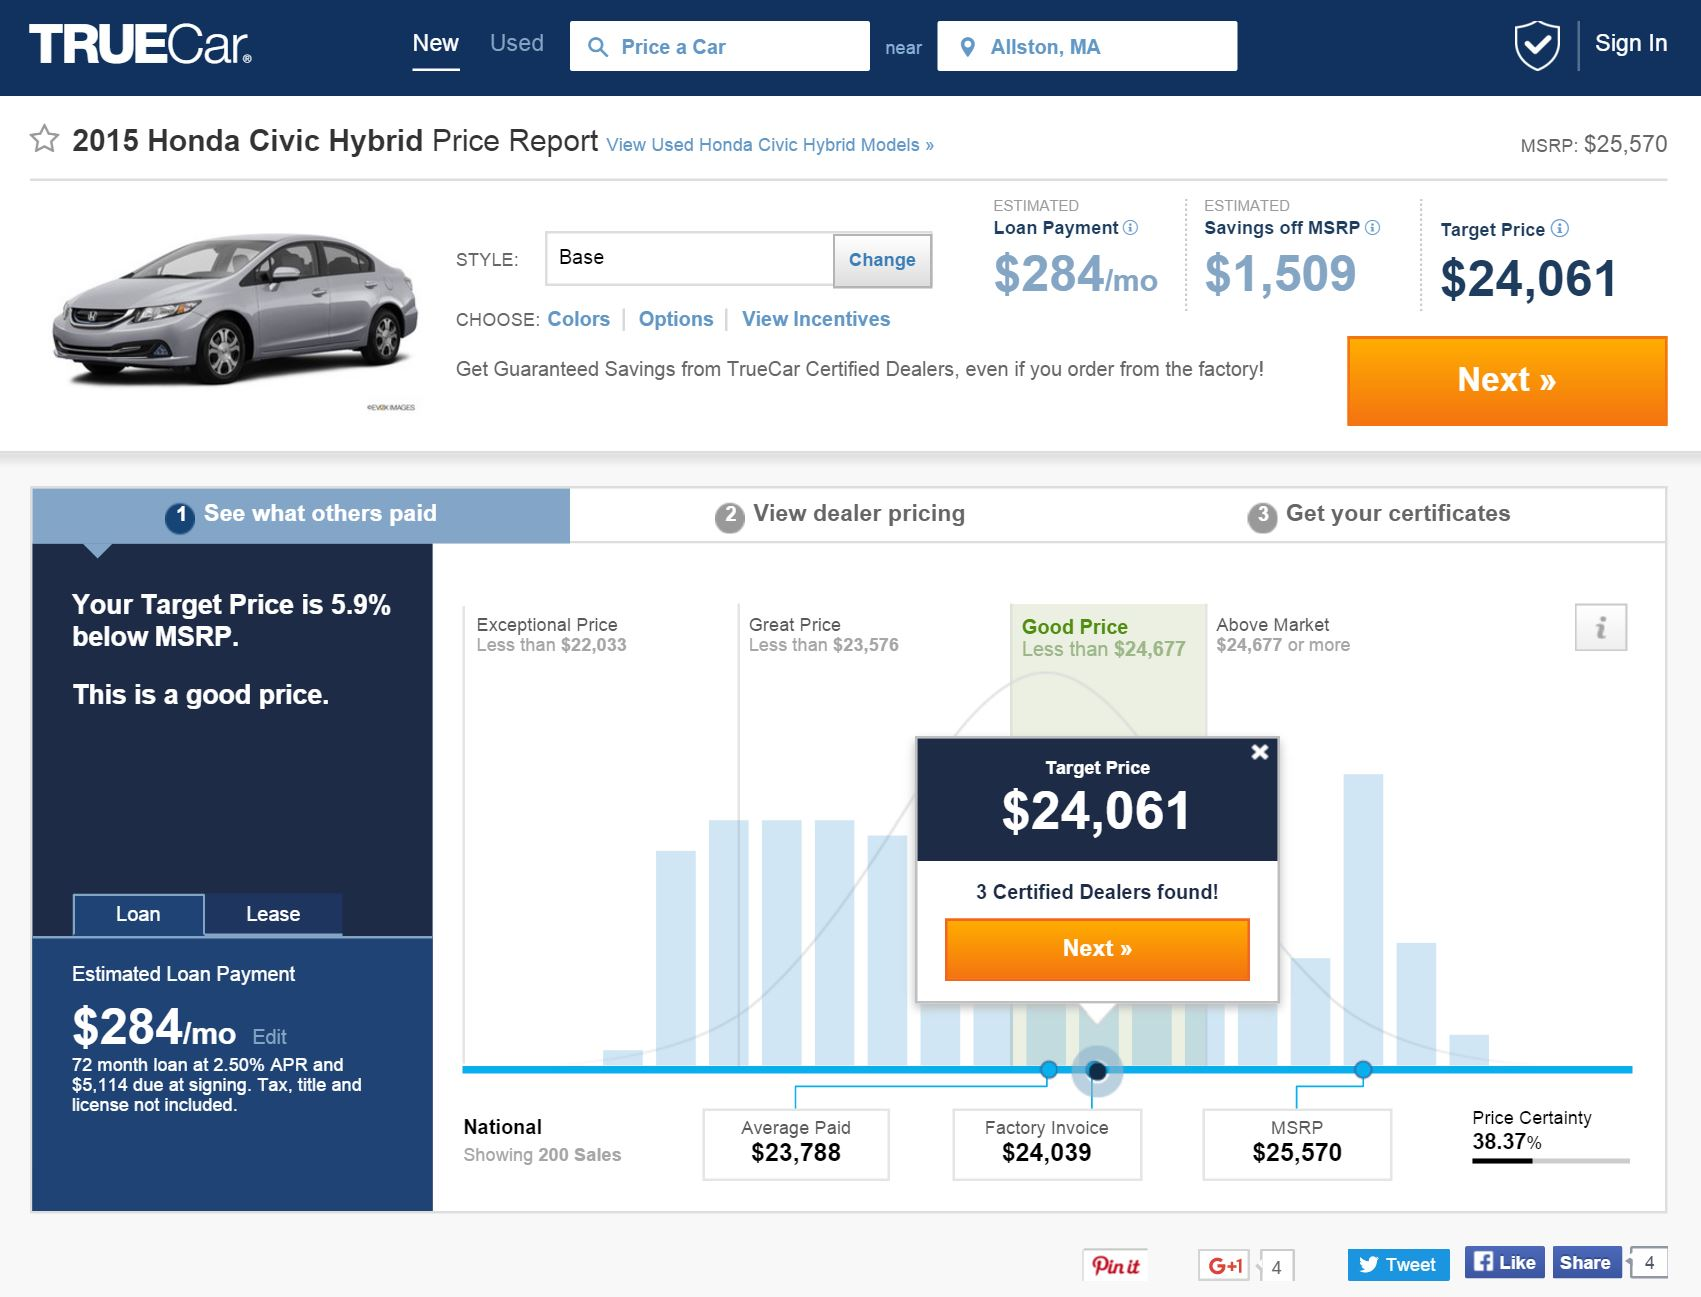 interestingly enough the average market price paid for this honda was actually roughly $250 less than the truecar estimate indicating the truecar